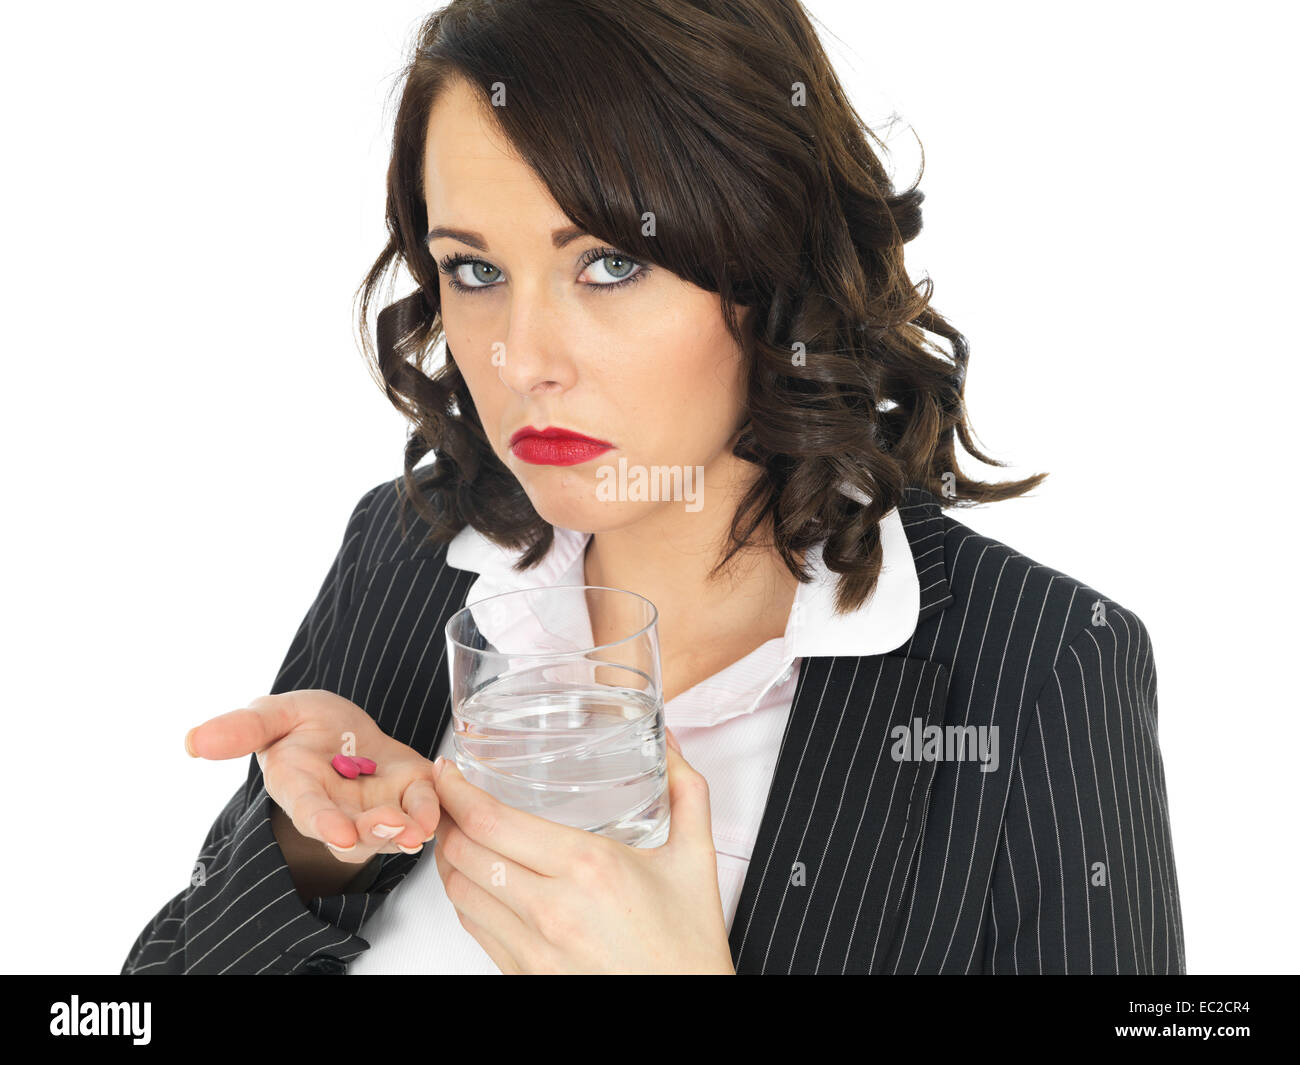 Unwell Business Woman Taking Tablets - Stock Image